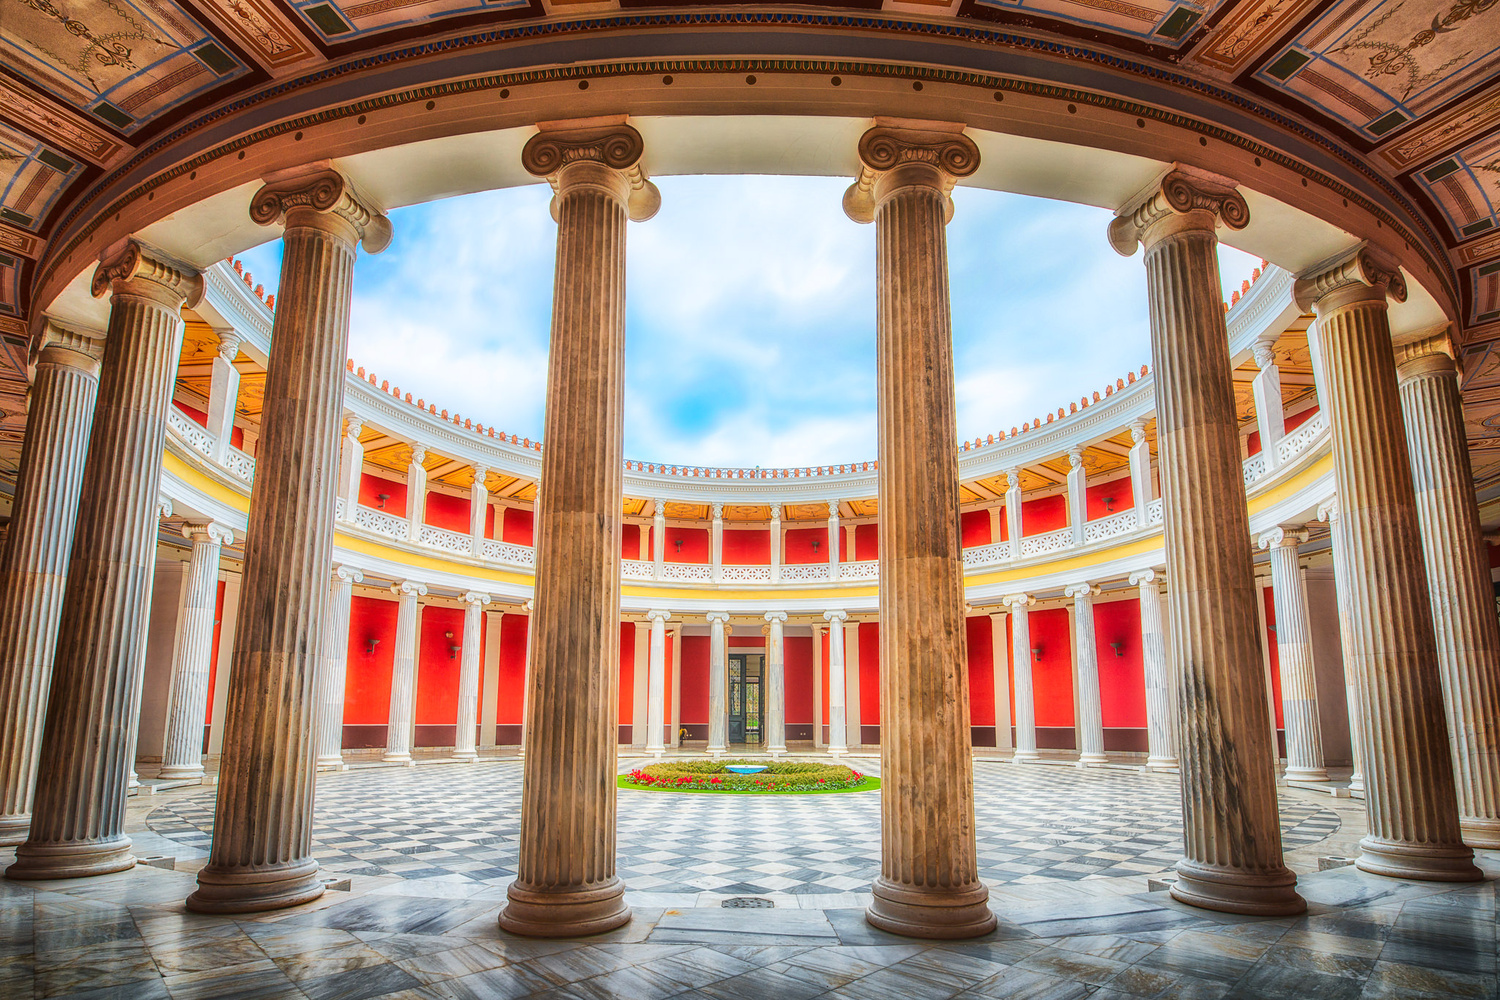 Zappeion Exhibiton Hall - the Atrium | Athens, Greece by Nico Trinkhaus